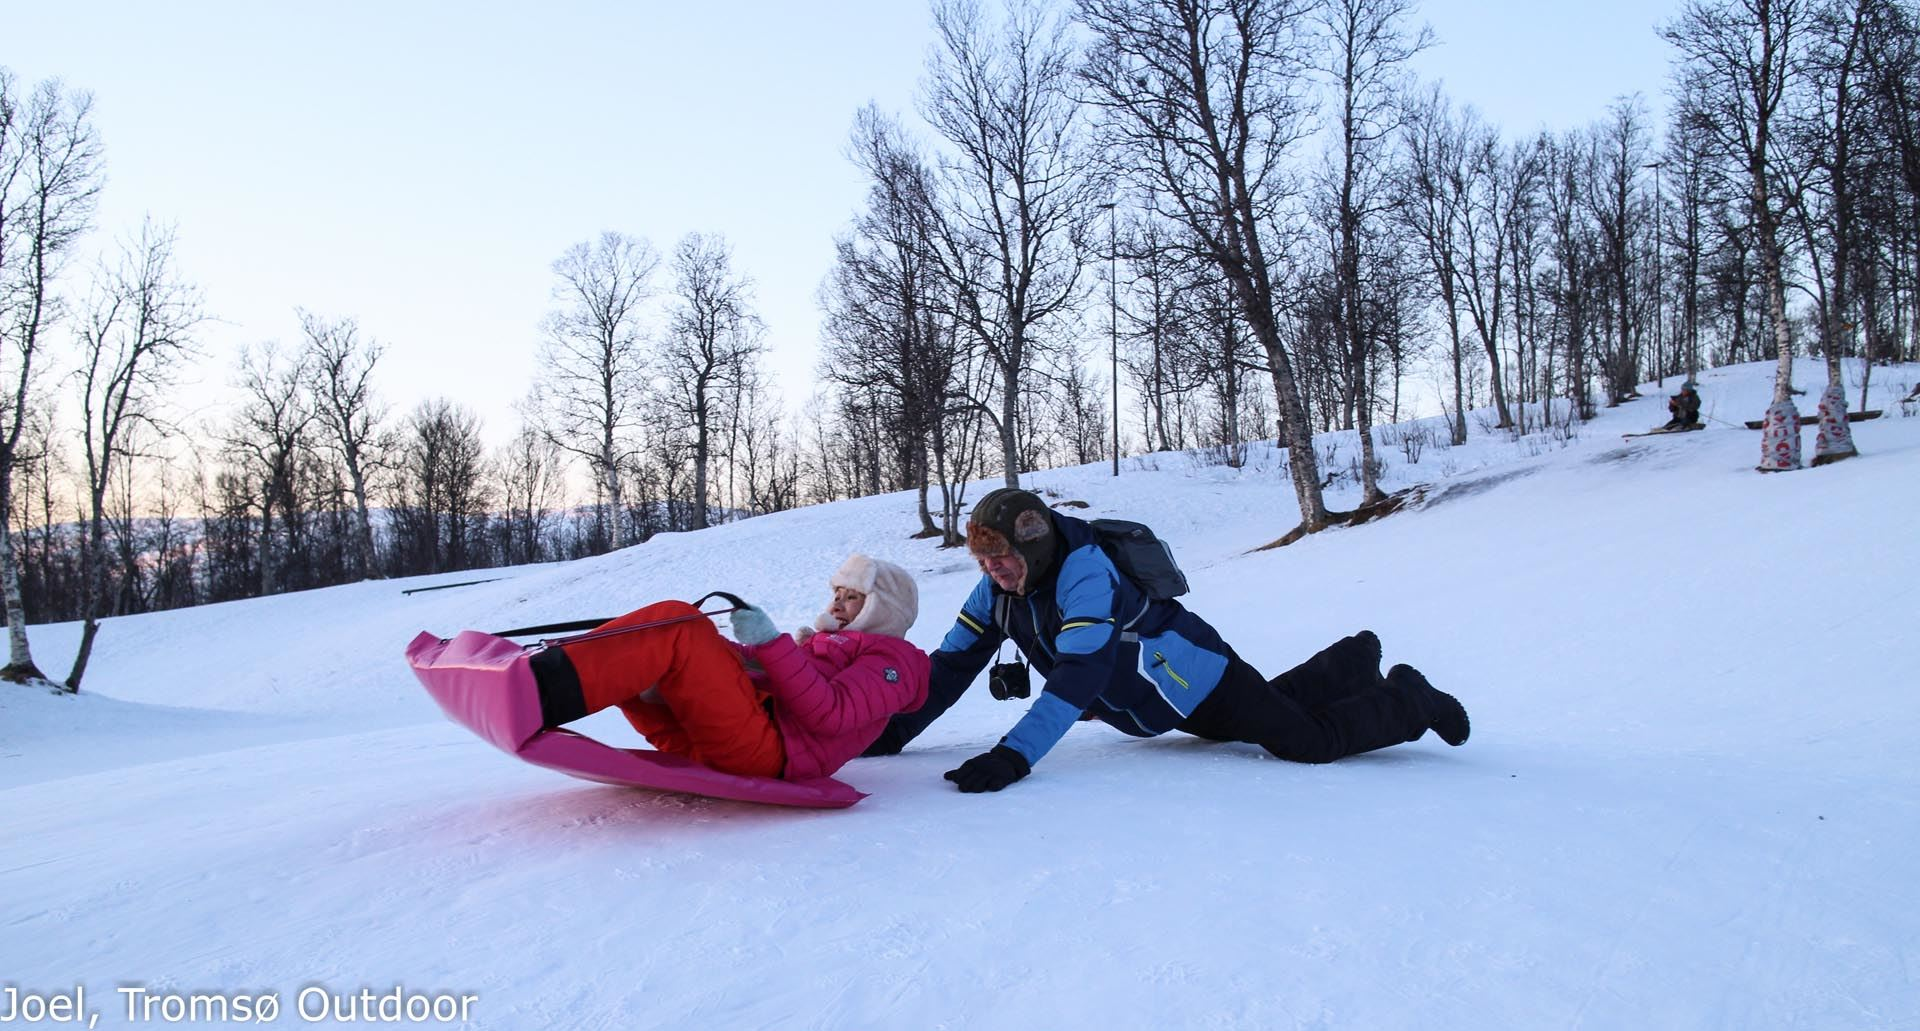 Snowshoe Trip with a campfire - Tromsø Outdoor